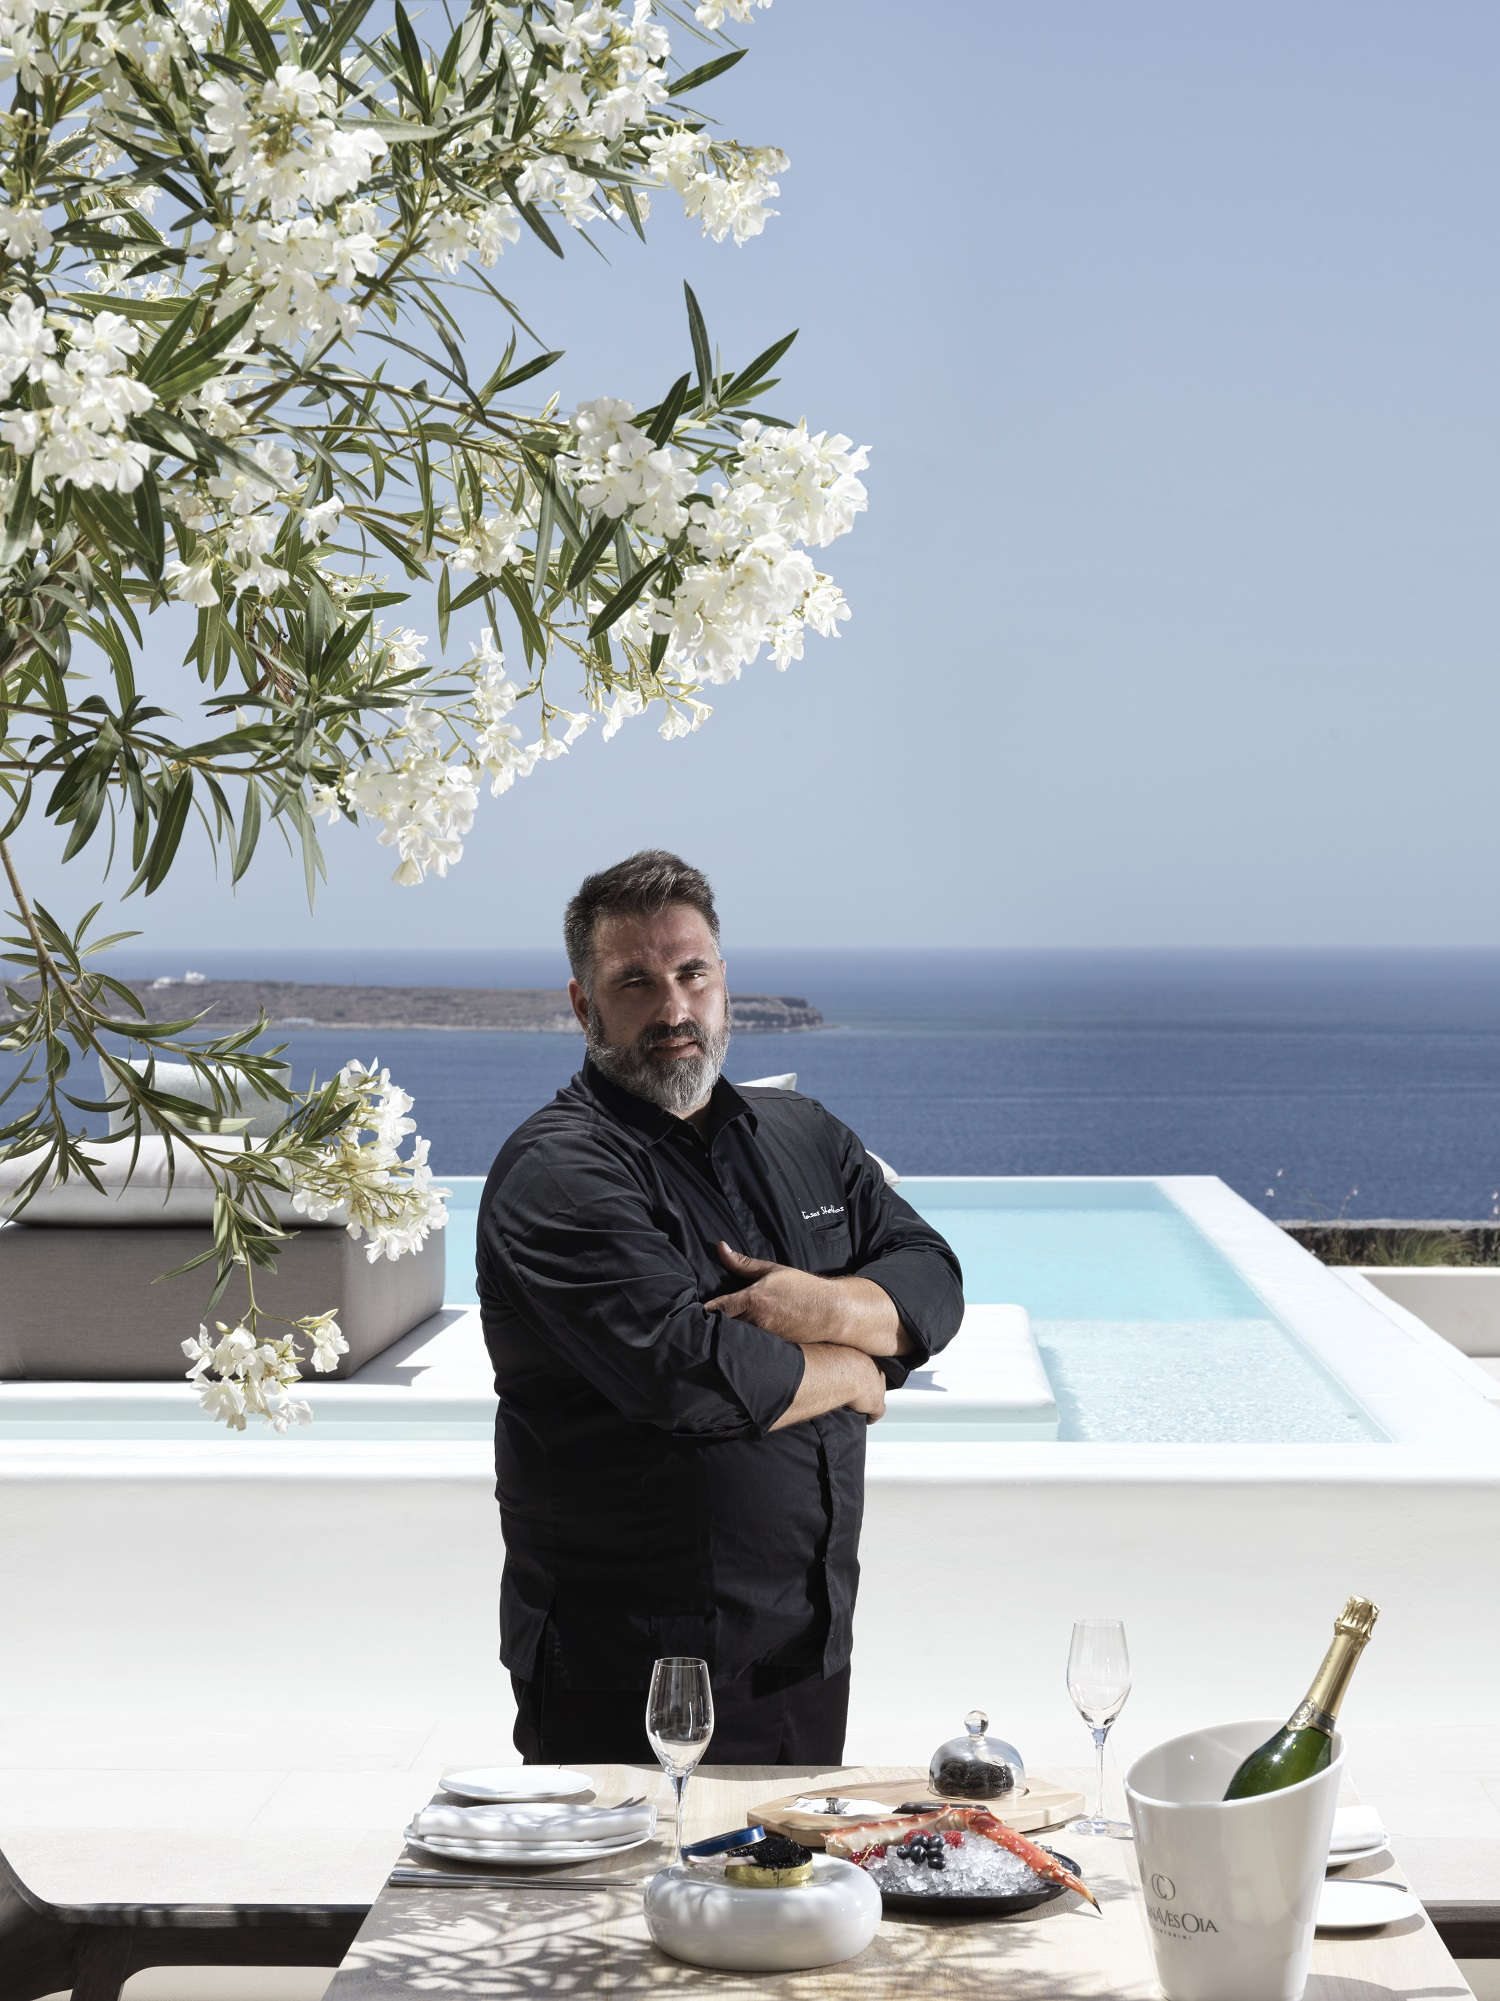 Q & A With Executive Chef Tasos Stefatos At Elements Restaurant, Canaves Oia Epitome